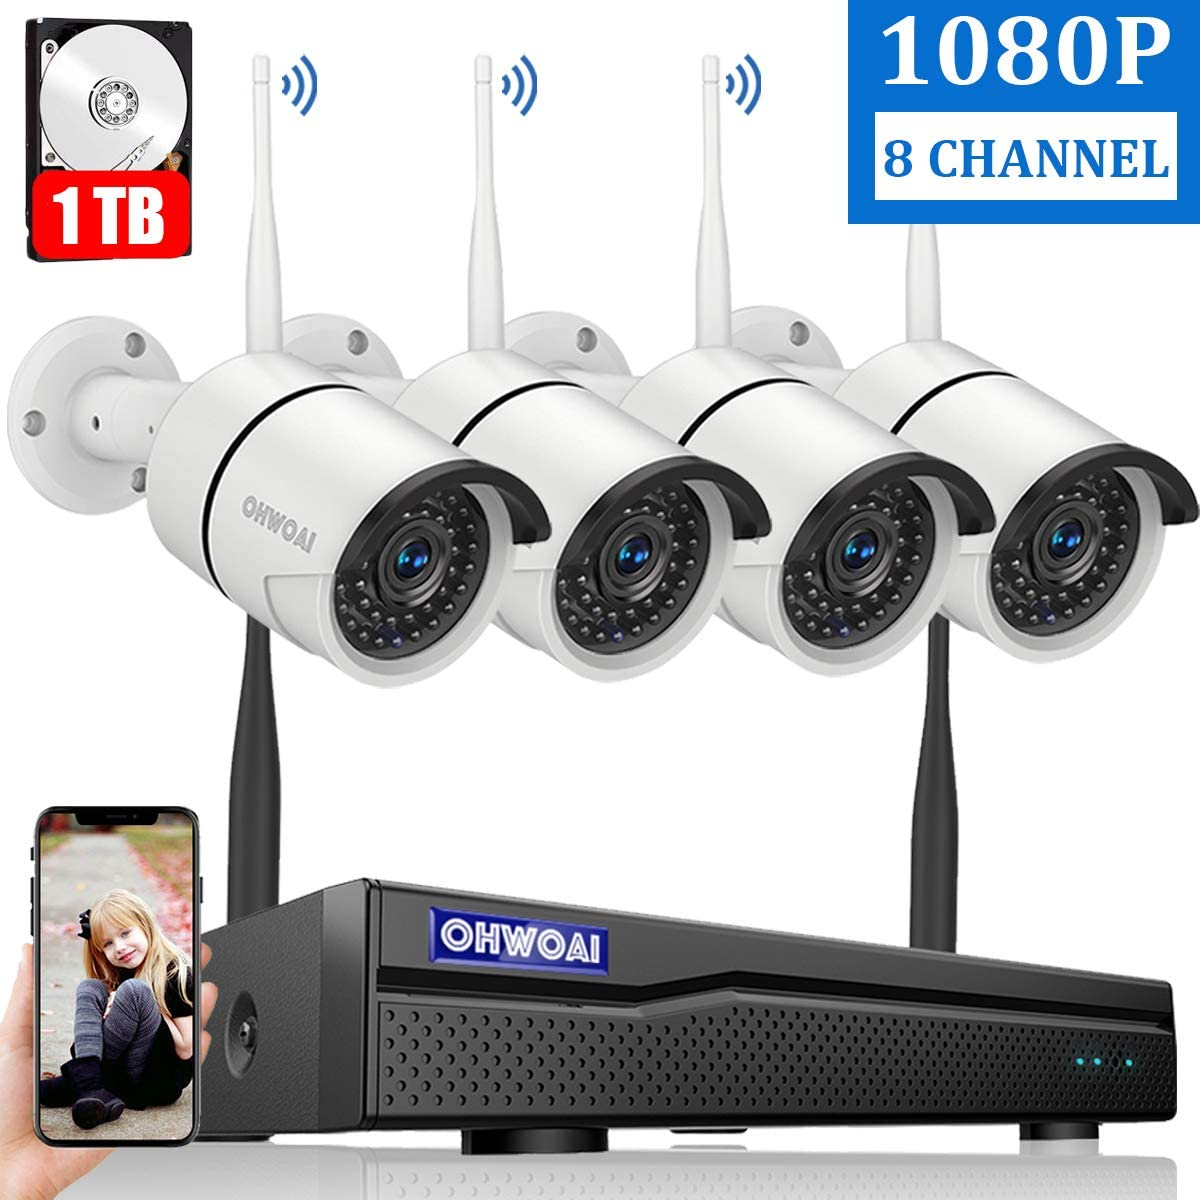 【8CH Expandable】 Home Security Camera System Wireless, OHWOAI 8 Channel 1080P Surveillance DVR Recorder with 1TB Hard Drive, 4Pcs 2.0MP 1080P Outdoor Wireless CCTV IP Cameras,Night Vision,Waterproof 616yulqQcRLSL1200_